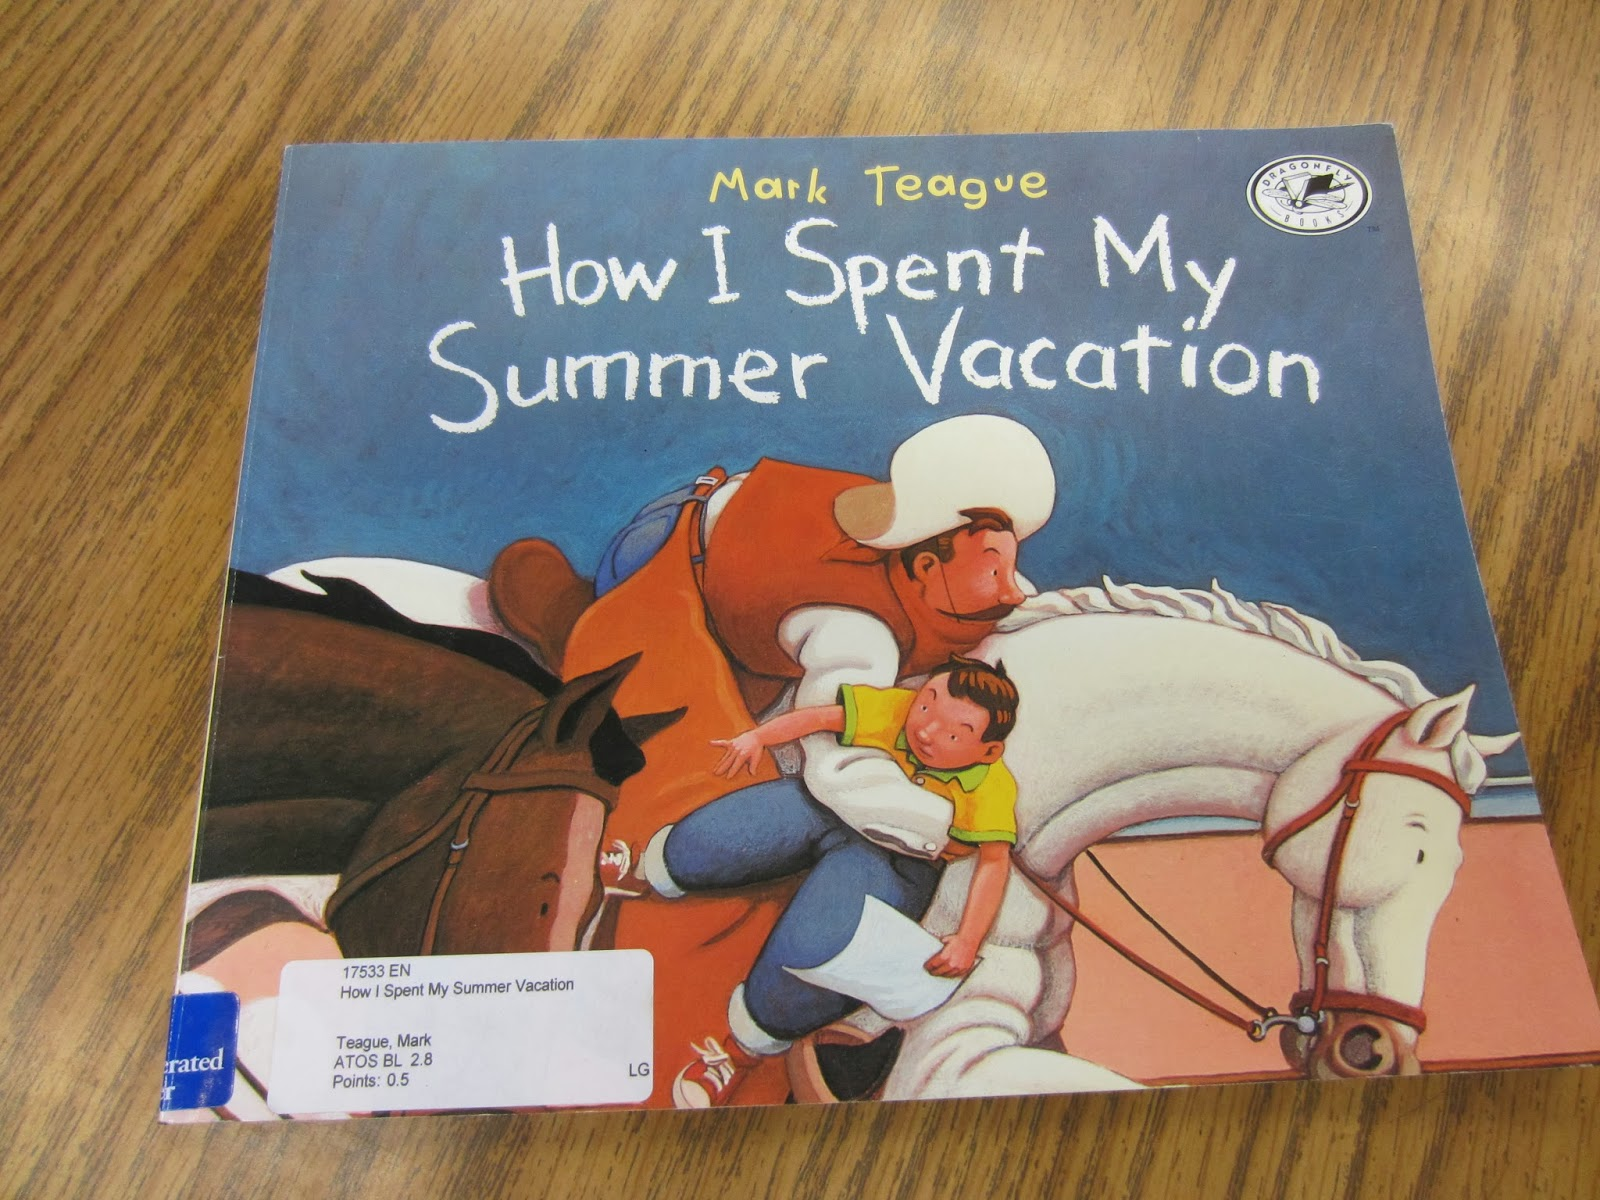 essay on how i spent my winter vacation for kids Free essay: my favorite season of the year is summer because of the warm weather, the school vacation,  more about why summer is my favorite season of the year essay.